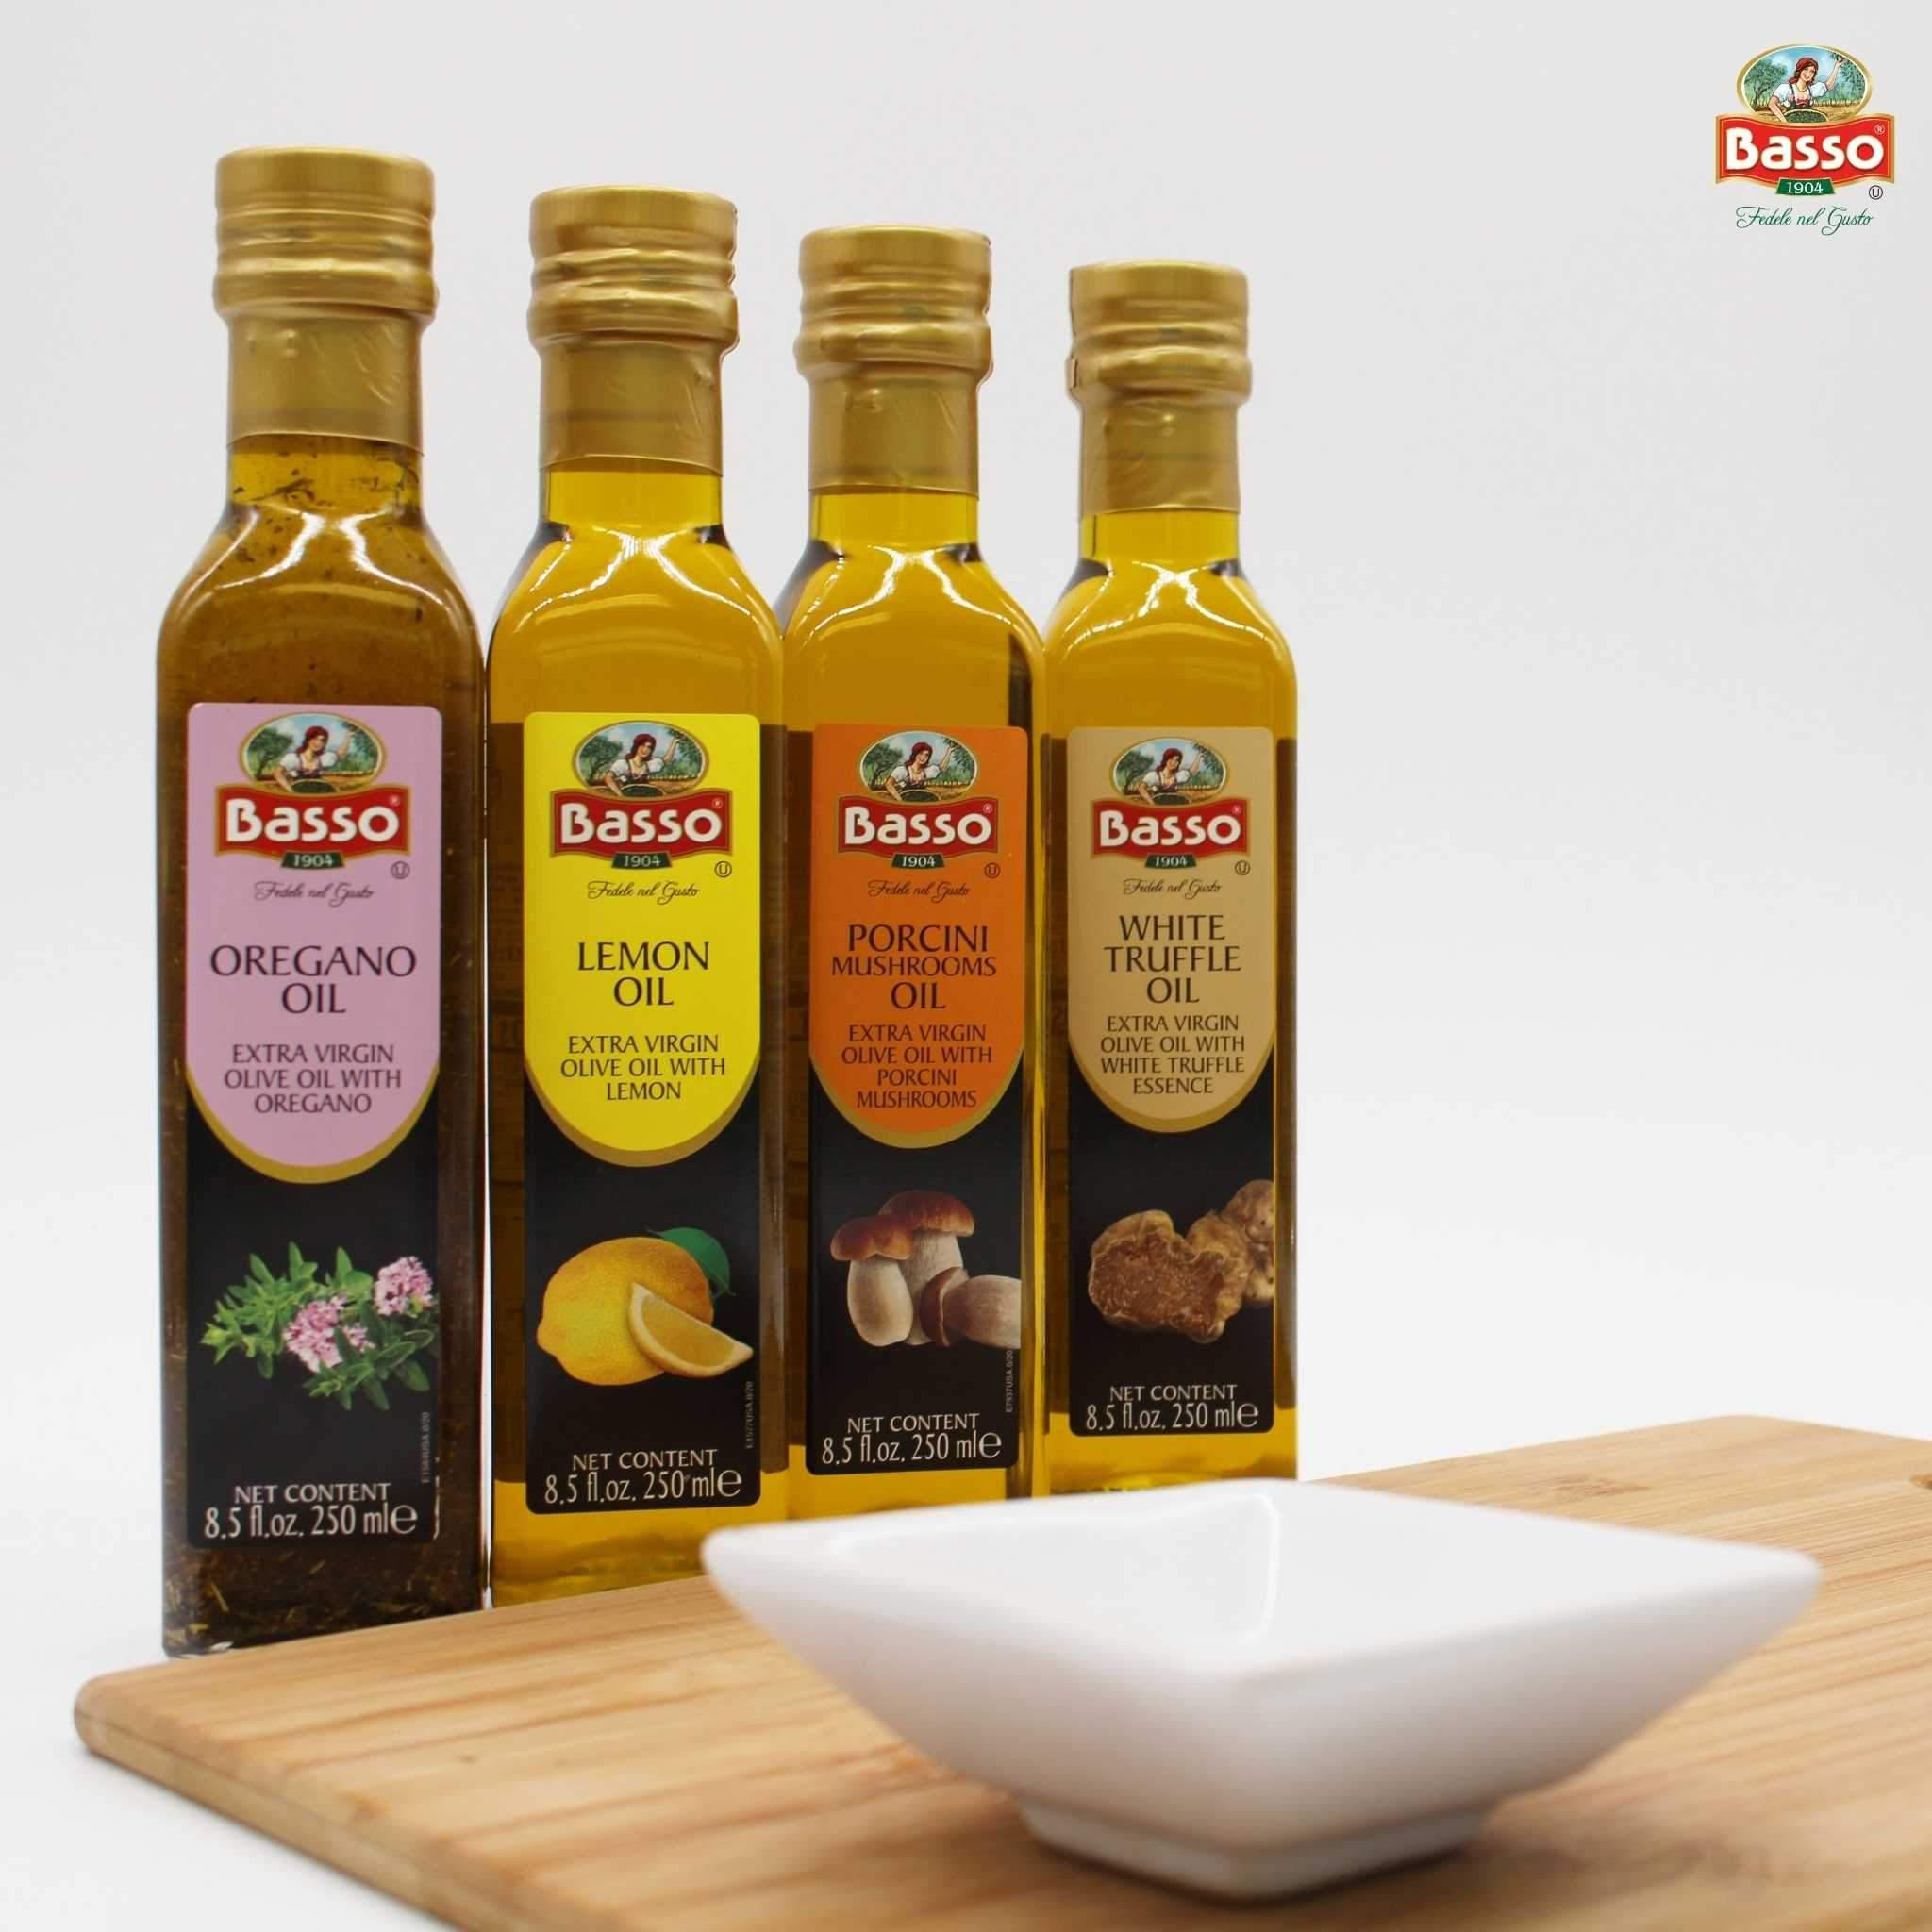 Basso Extra Virgin Olive Oil 4 Pack 8.5 fl oz